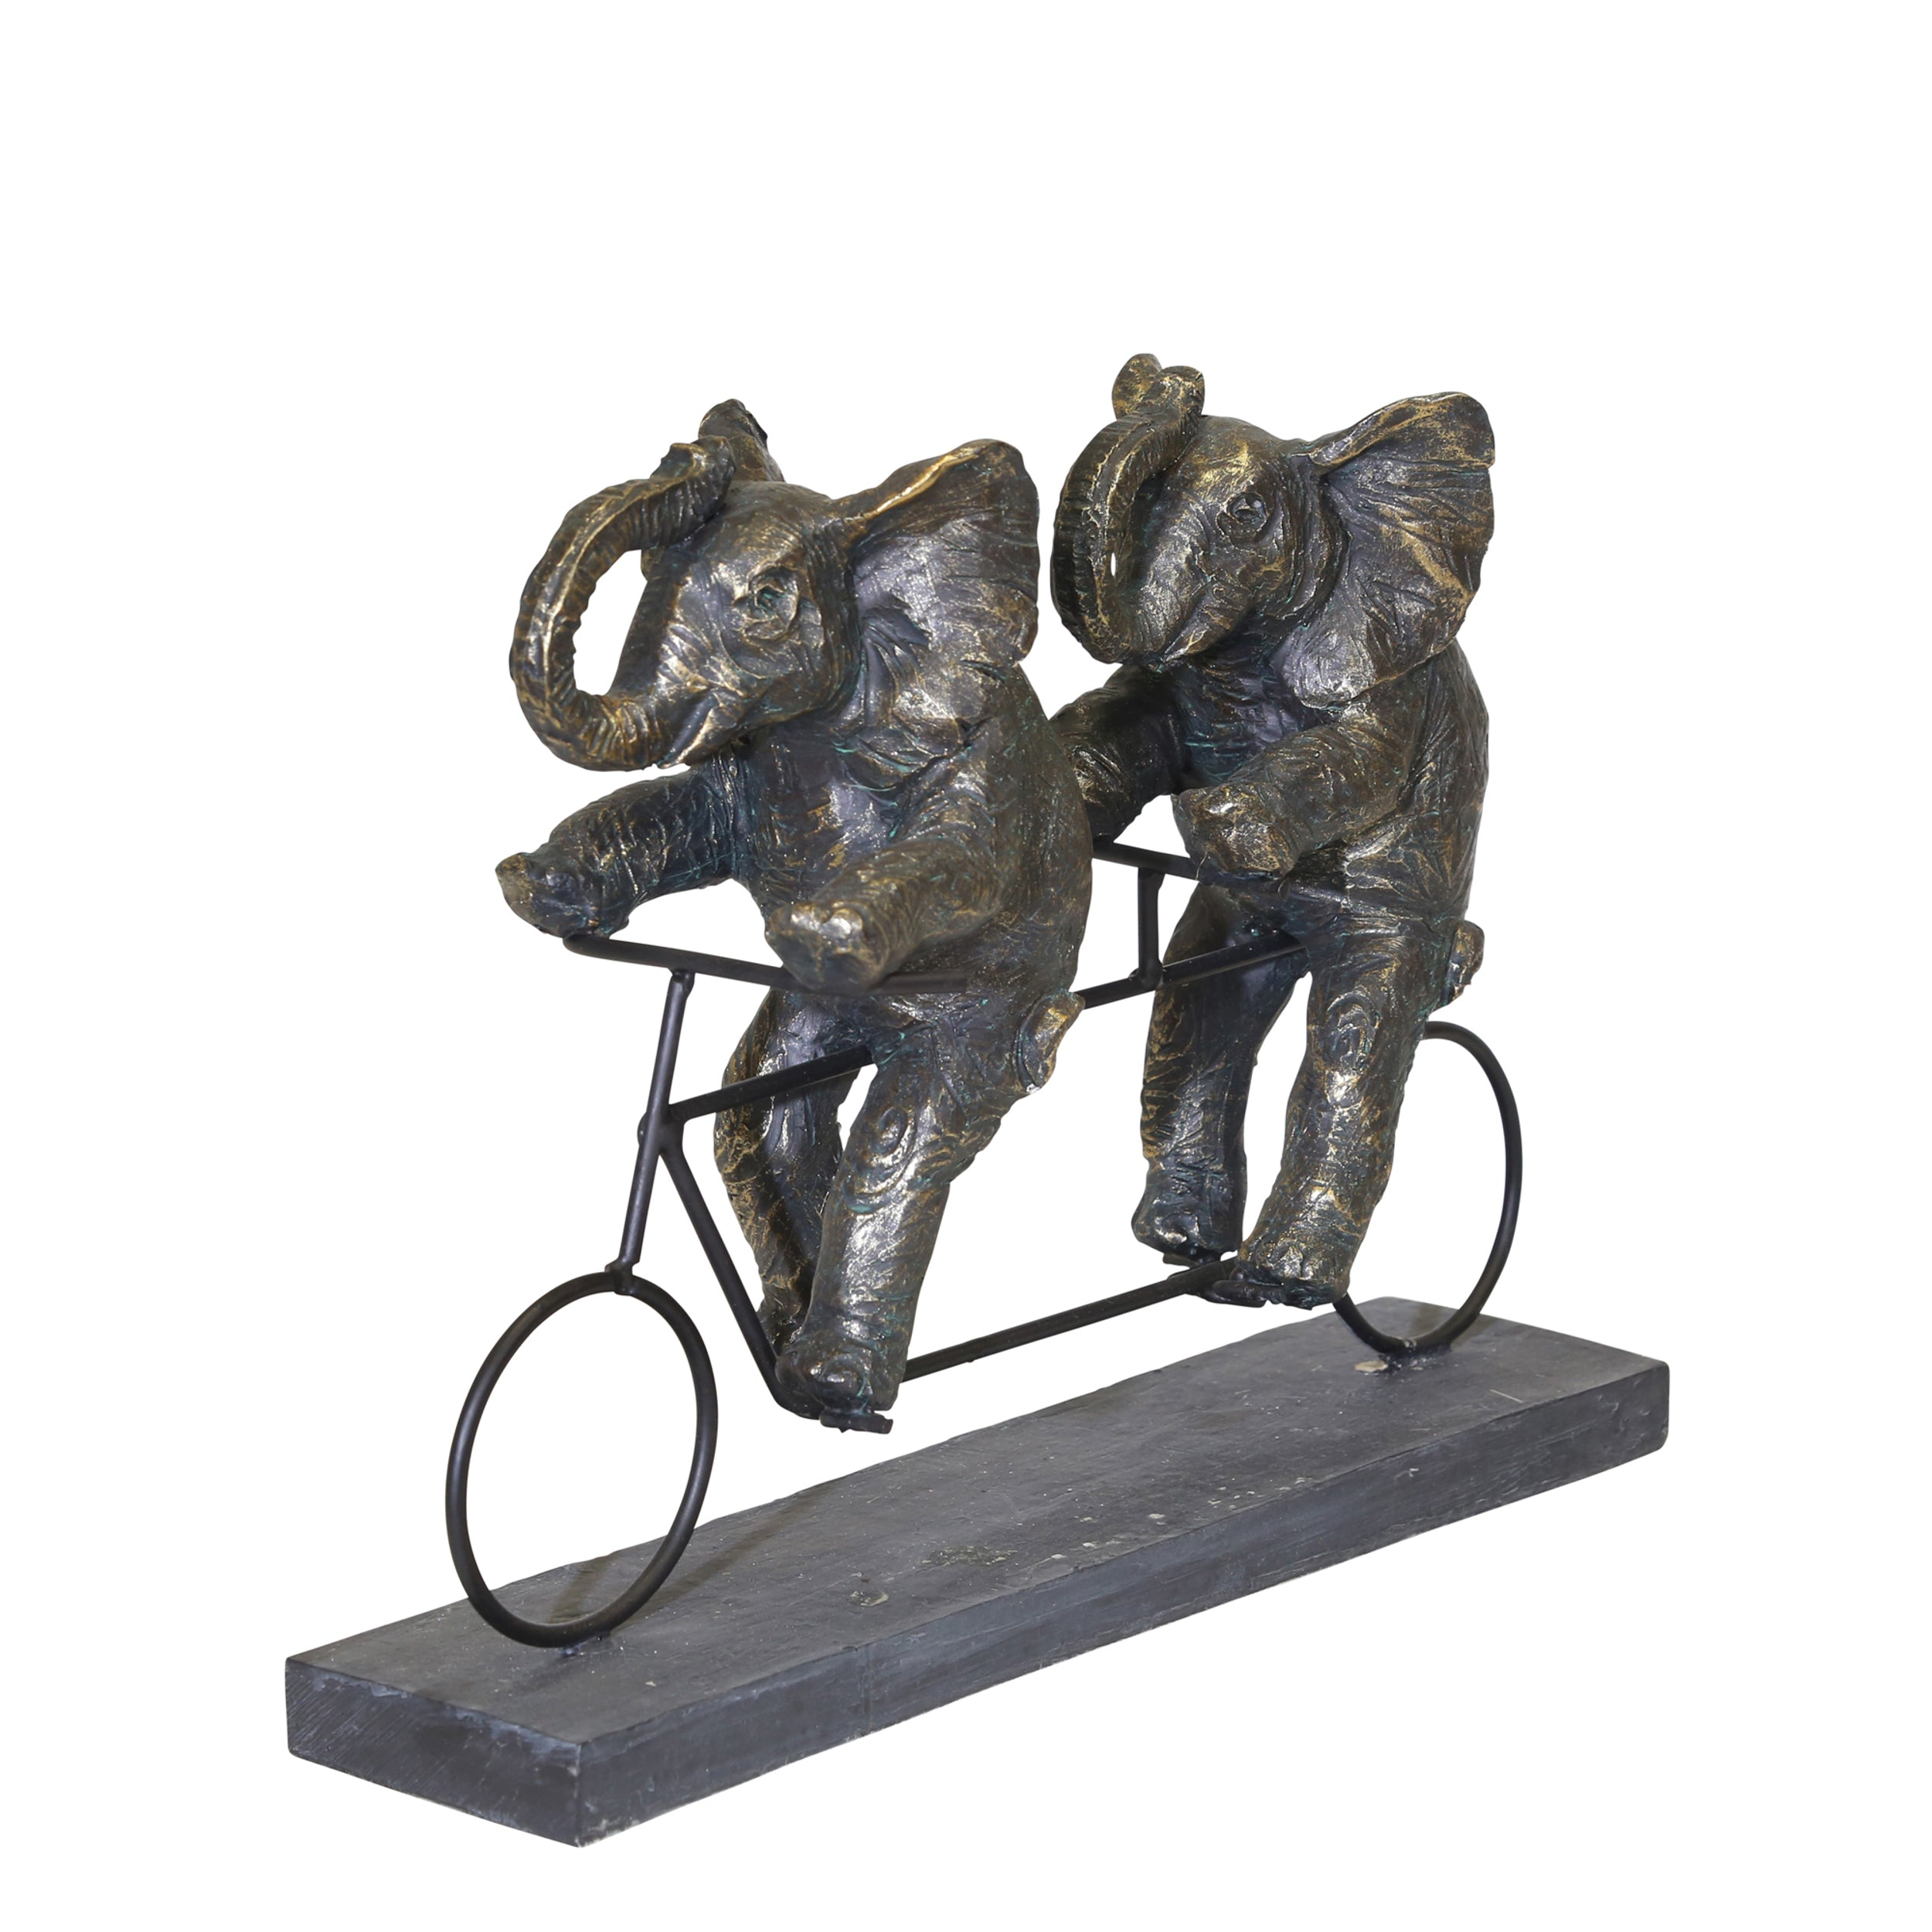 "POLYRESIN 14""L ELEPHANTS ON TANDEM BIKE, BRONZE"